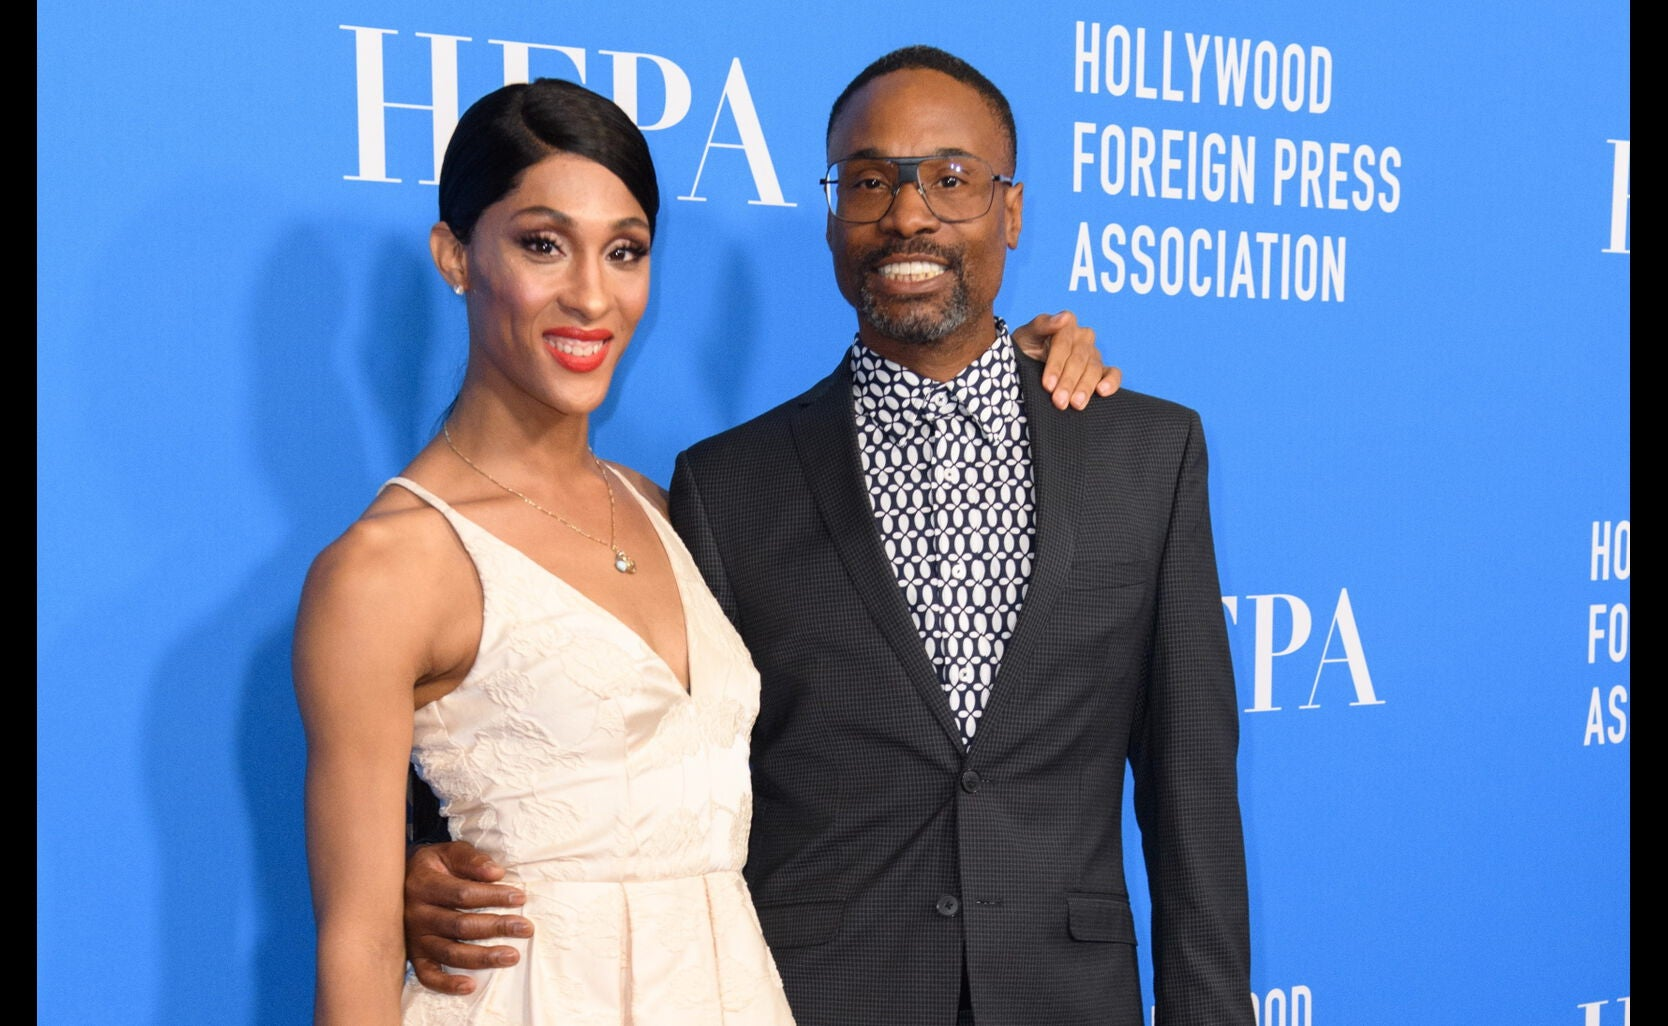 Billy Porter and MJ Rodriguez